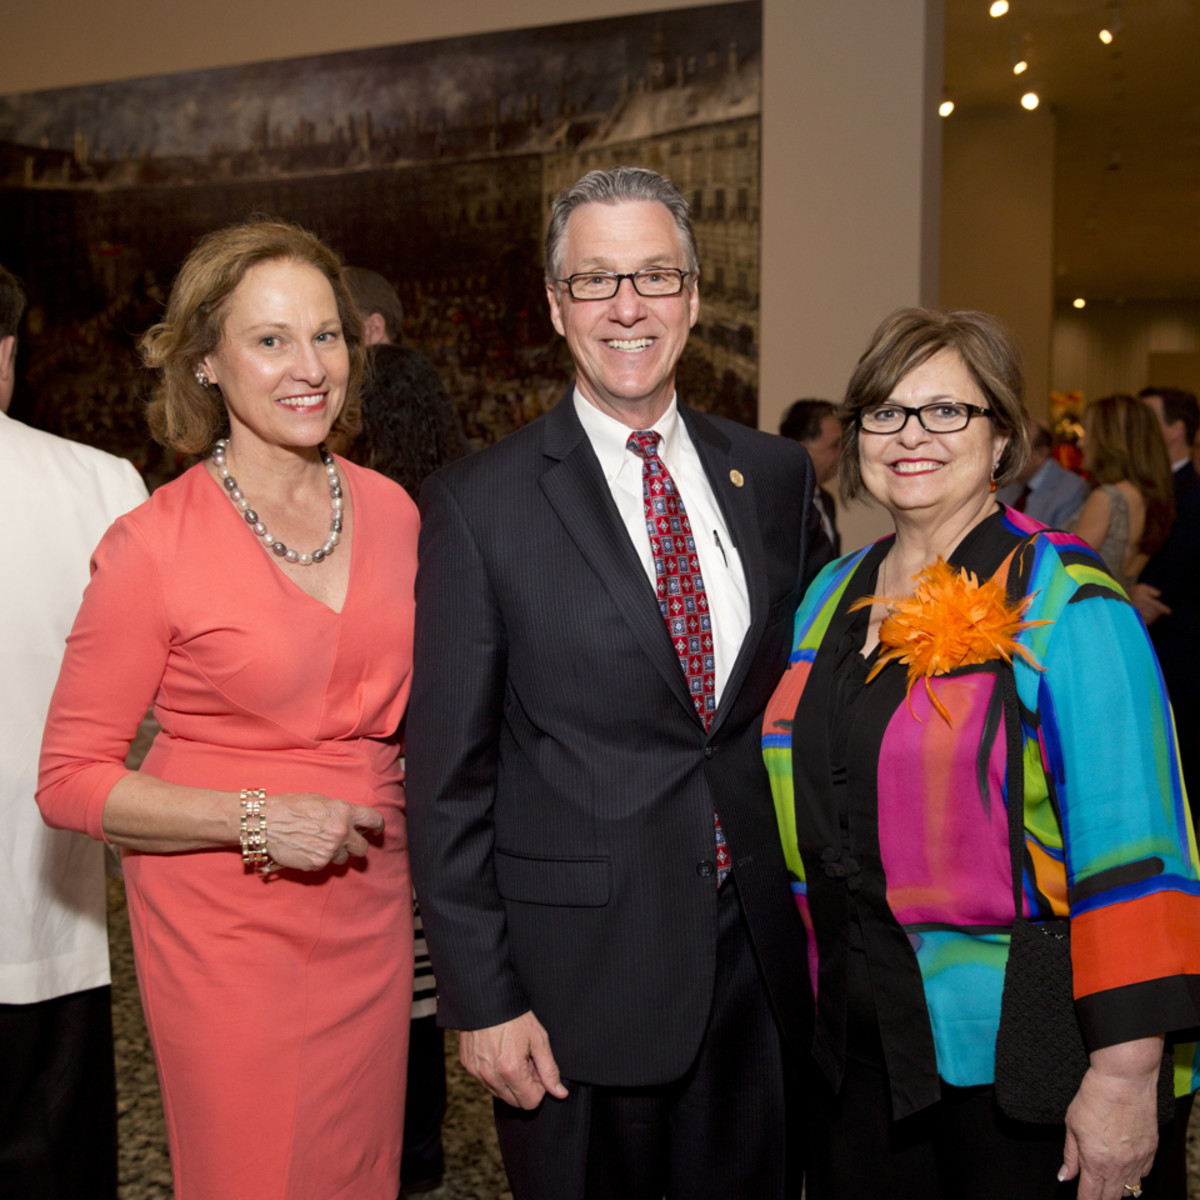 MFAH Habsburg Splendor dinner Minnette Boesel; Council Member Stephen Costello; Debbie Costello